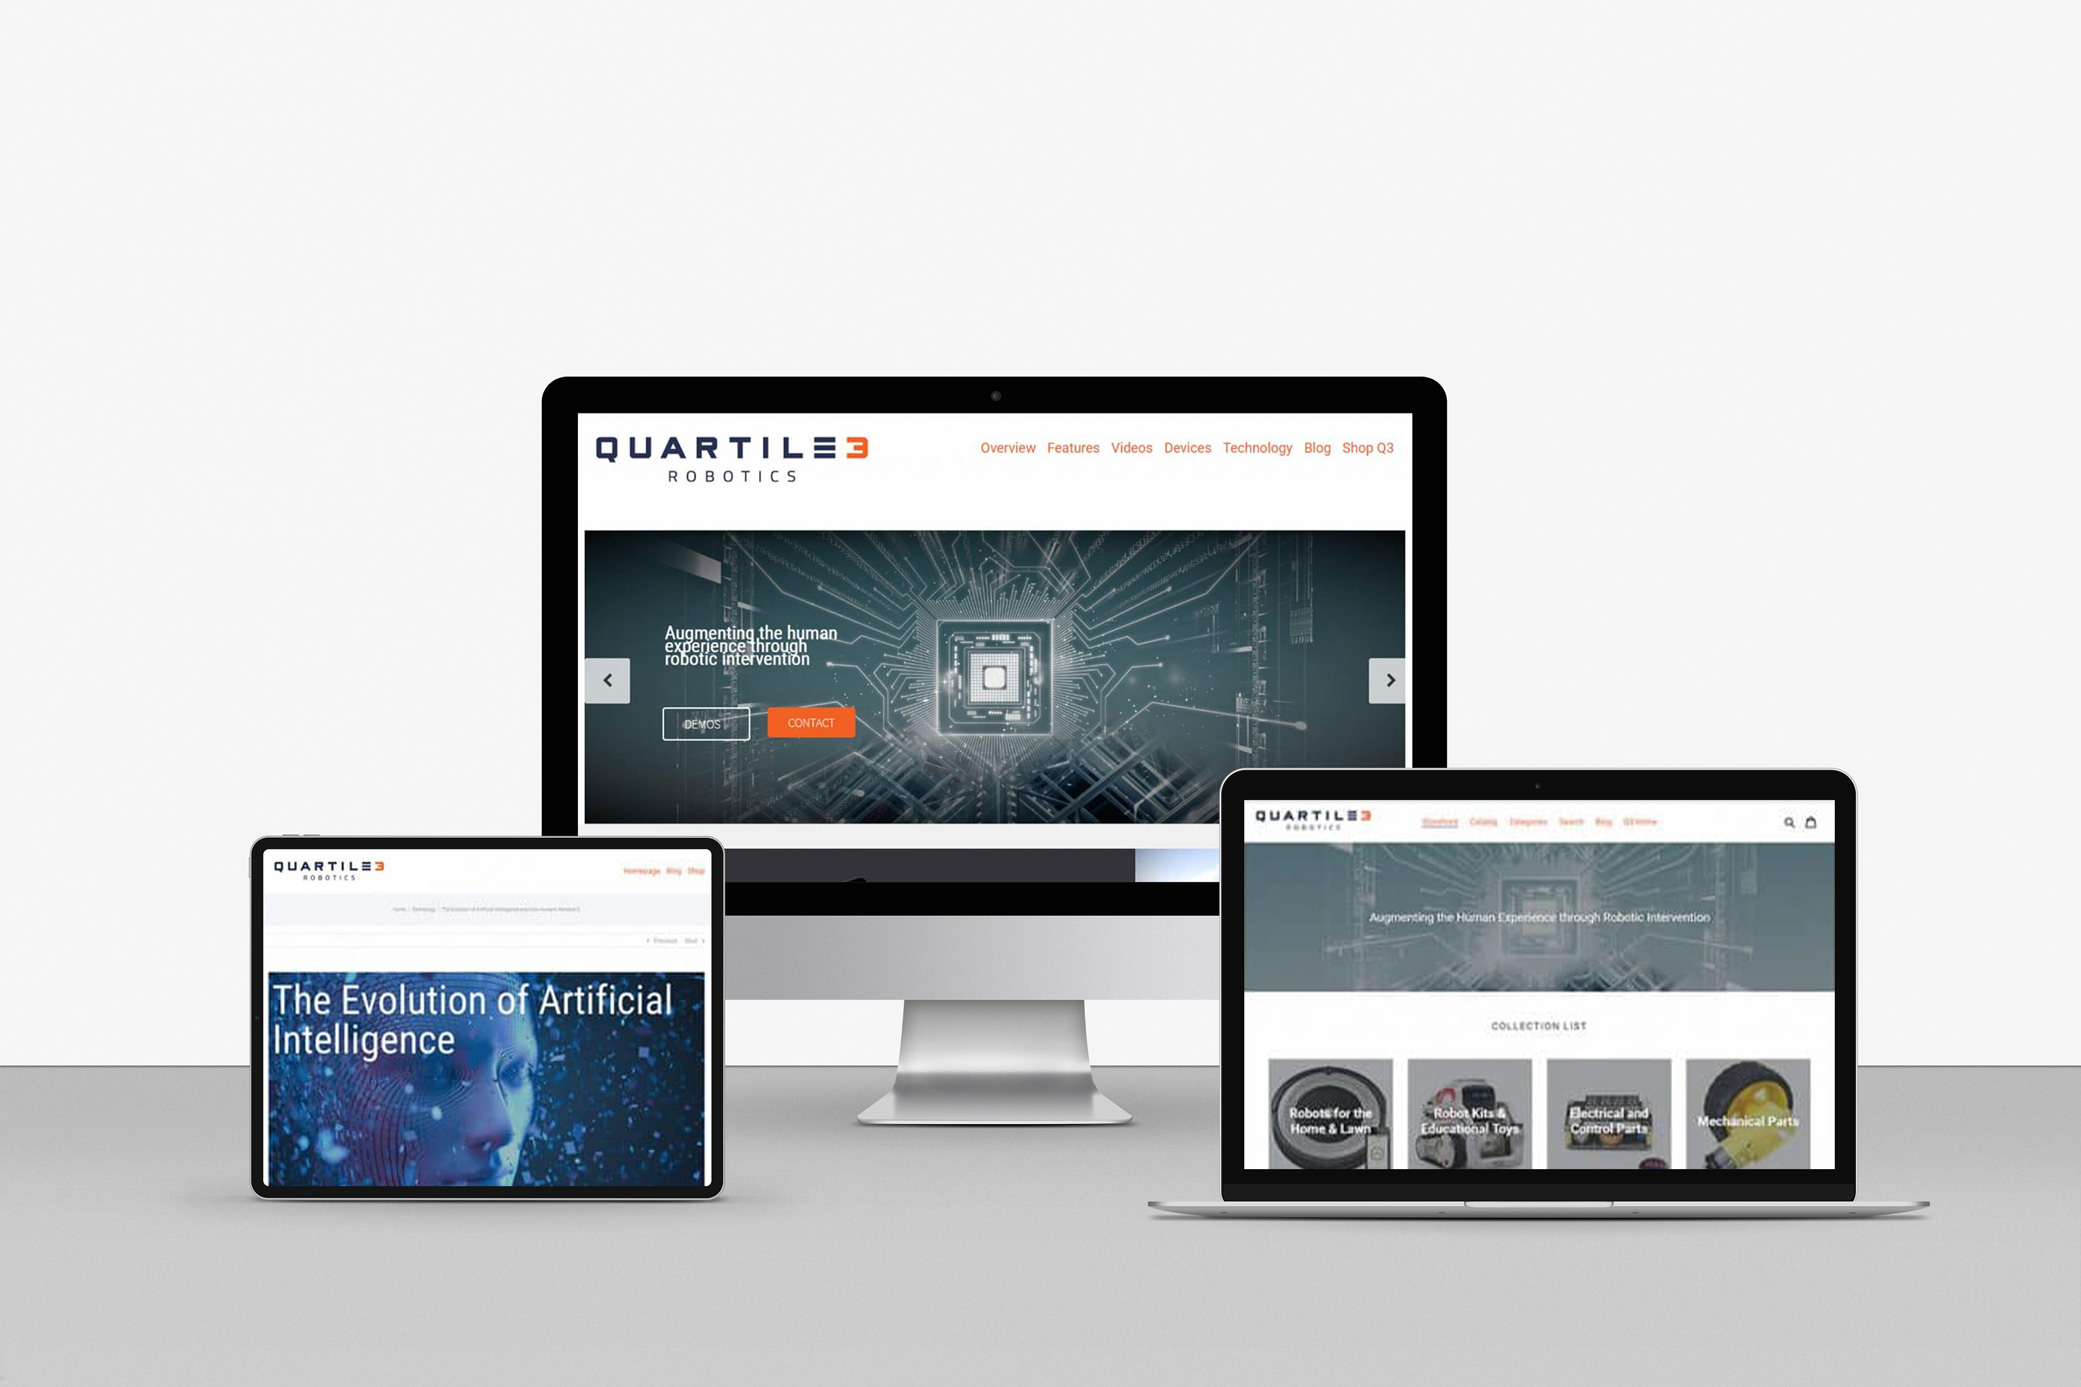 Quartile 3 Robotics technology company web design aligning with the tech-focus of the brand, incorporating images of circuits, droids, and computers.